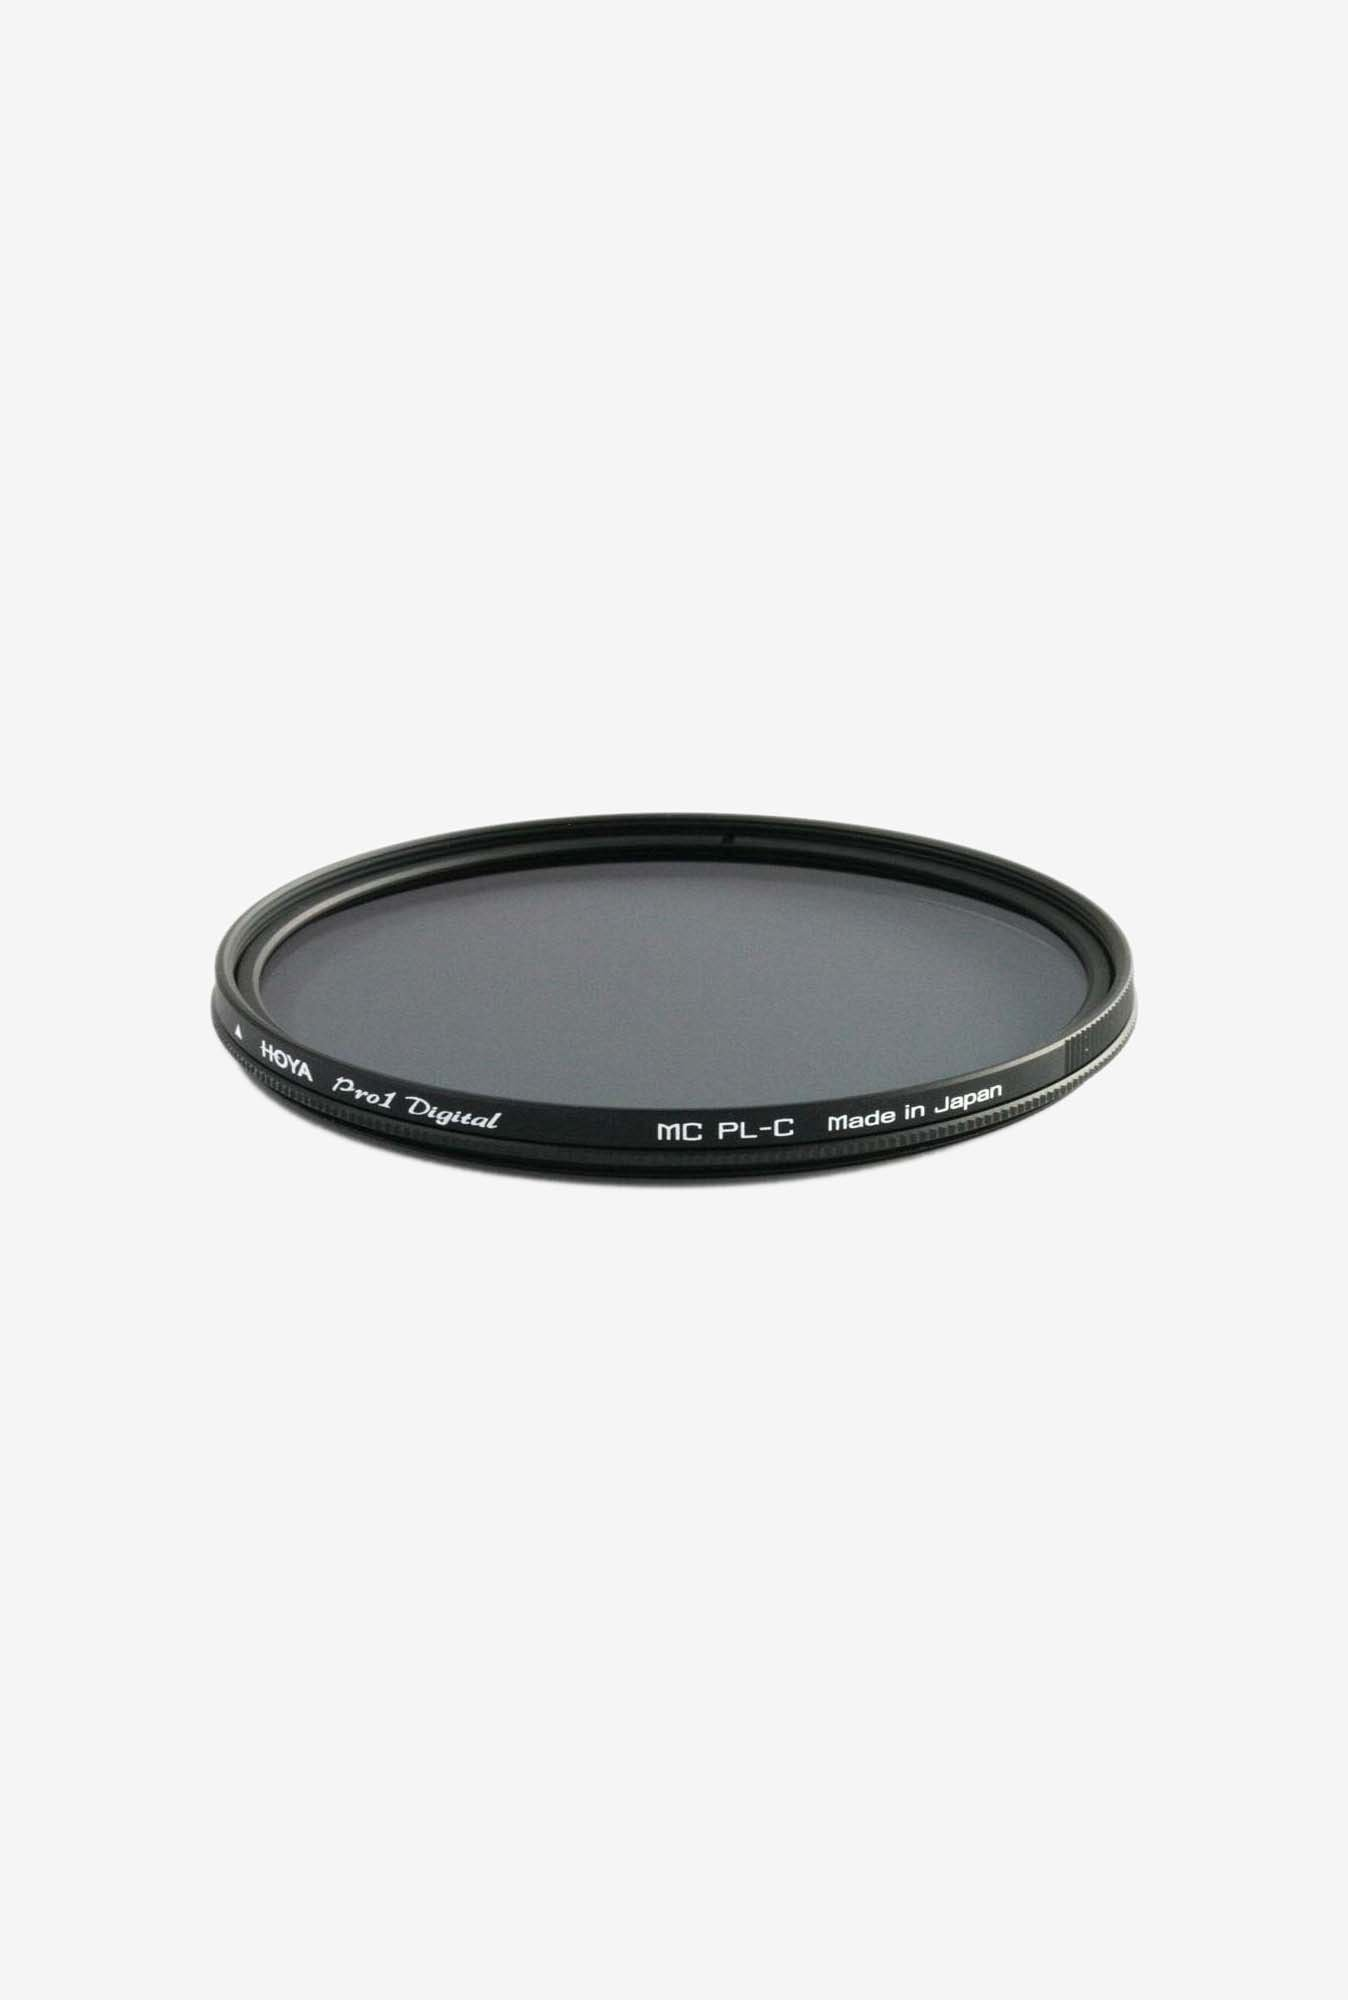 Hoya 67mm Digital Circular Polarizer (Black)